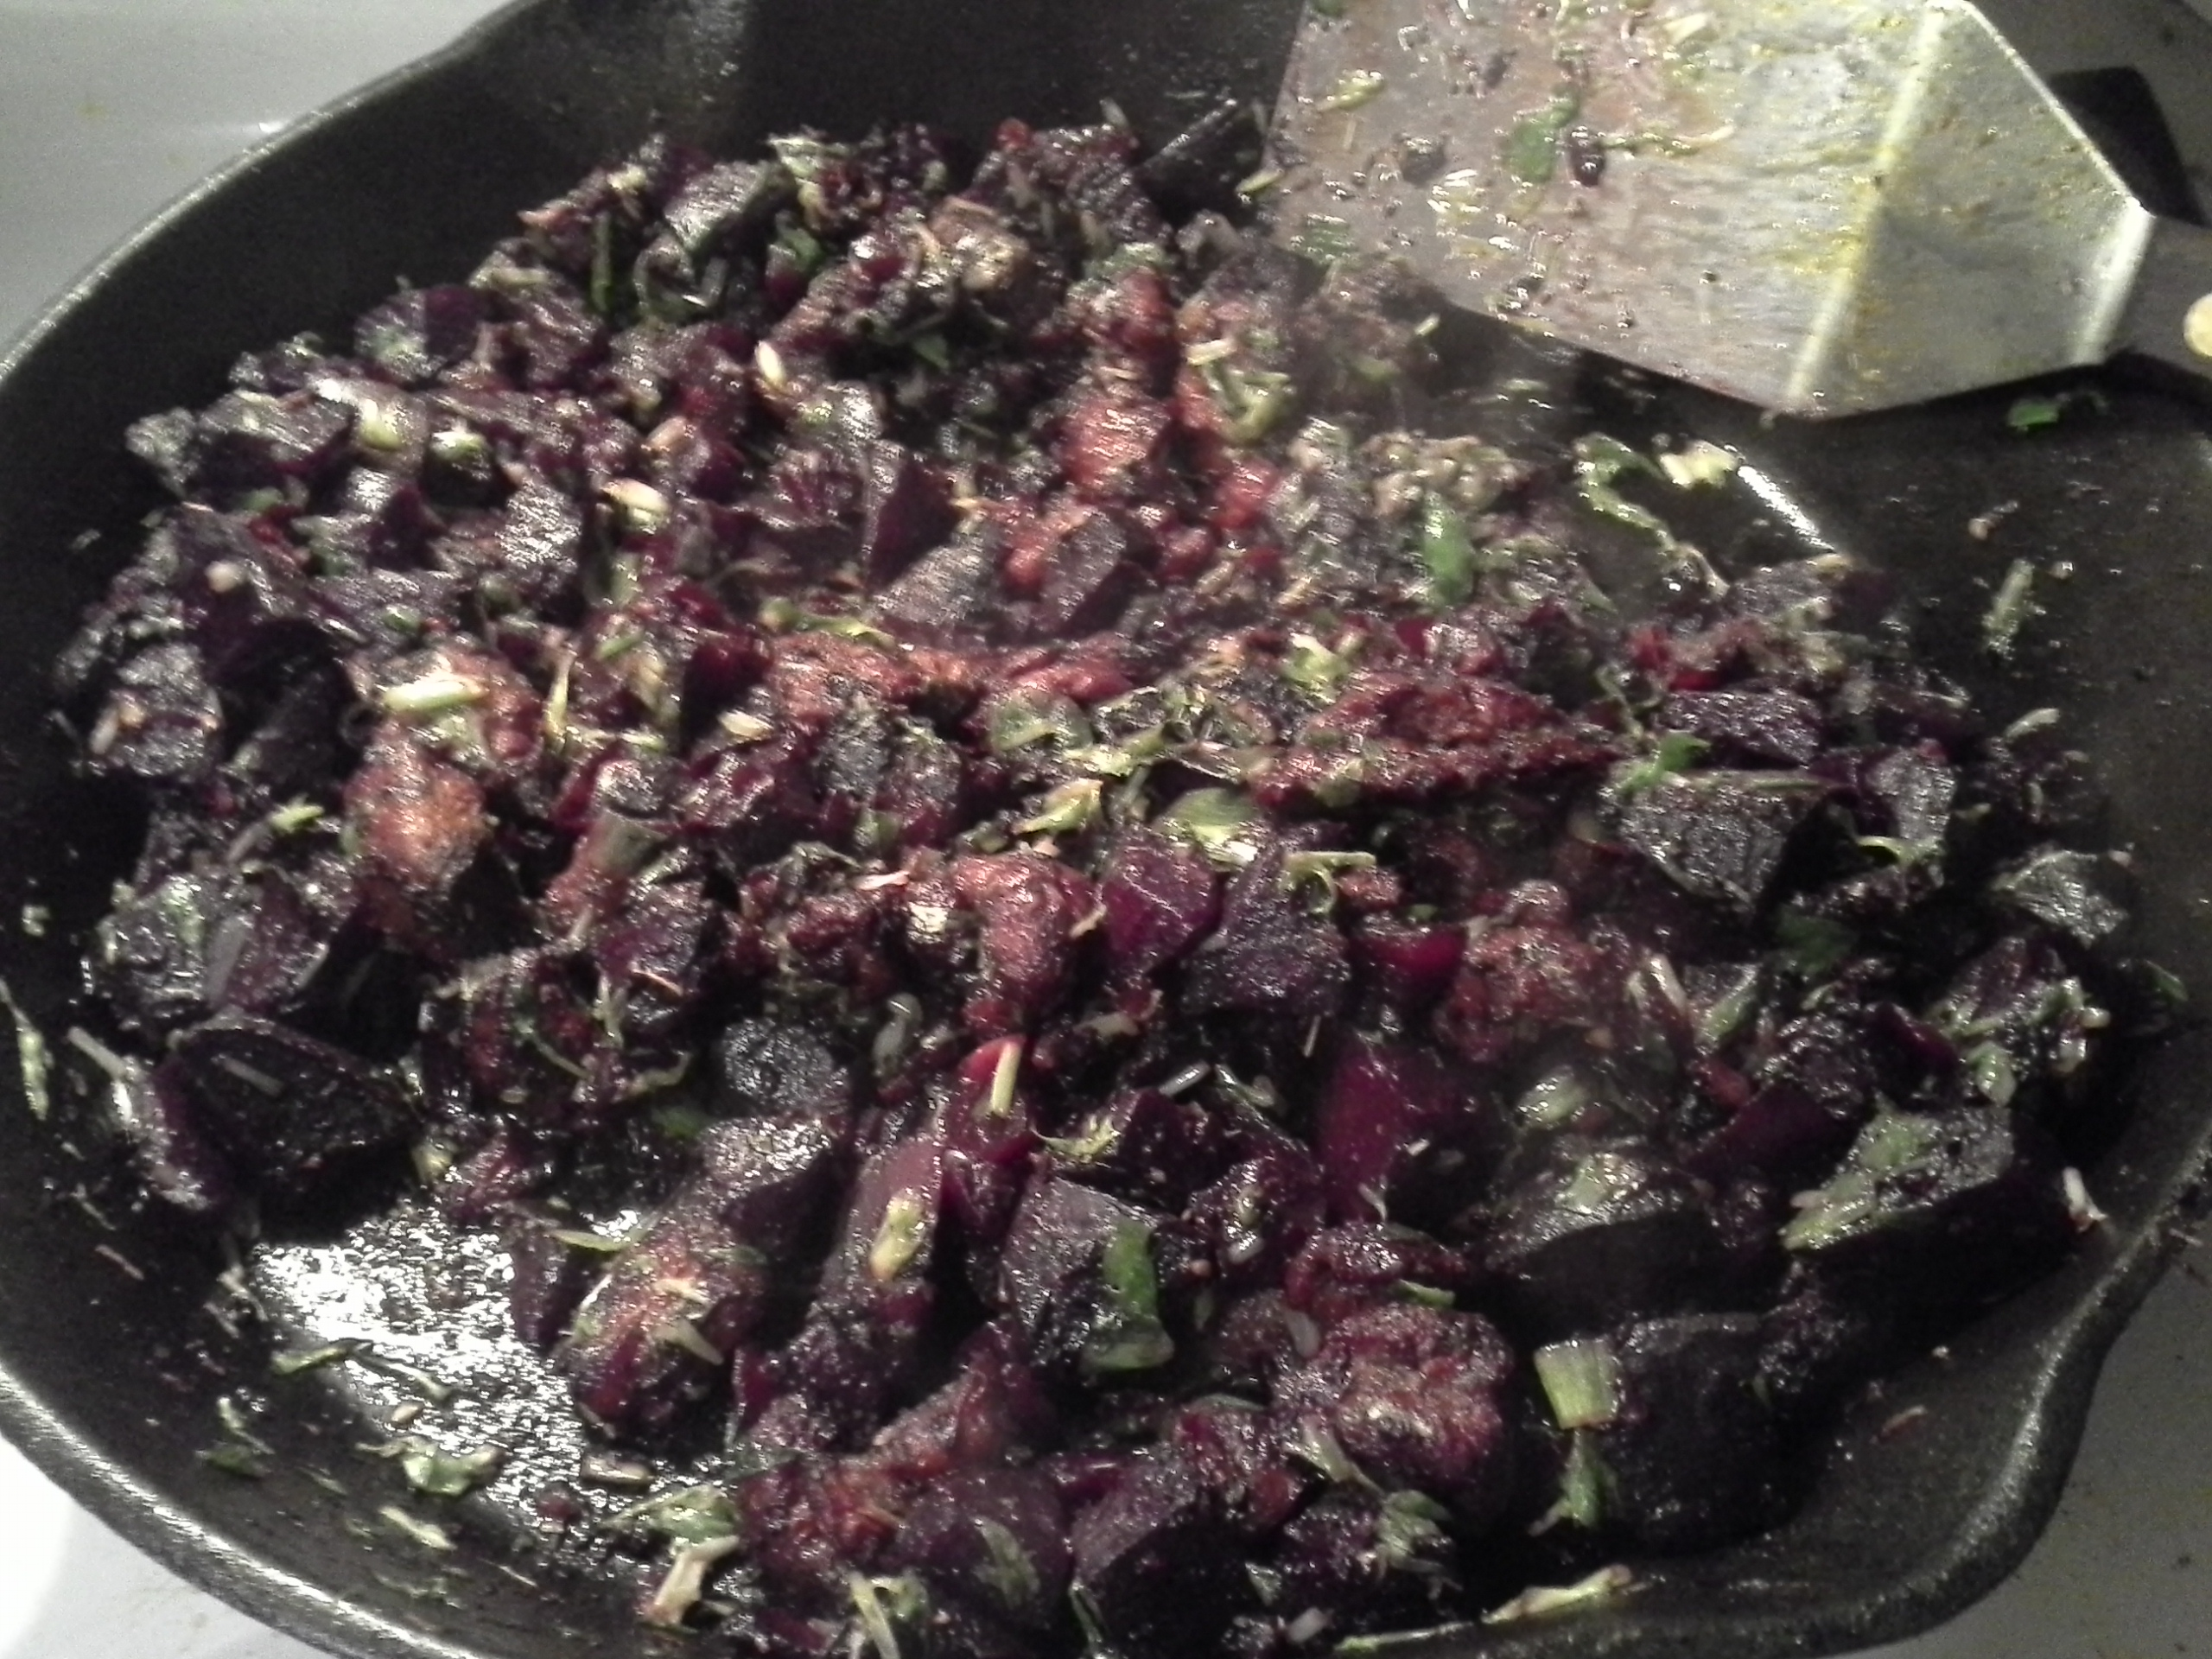 Dinner: 9:50 p.m. | 8 oz. beef, 2 beets, frisee endive, 1/2 sweet onion, 4 cloves garlic, 2 Tbsp. coconut oil, herbs & spices